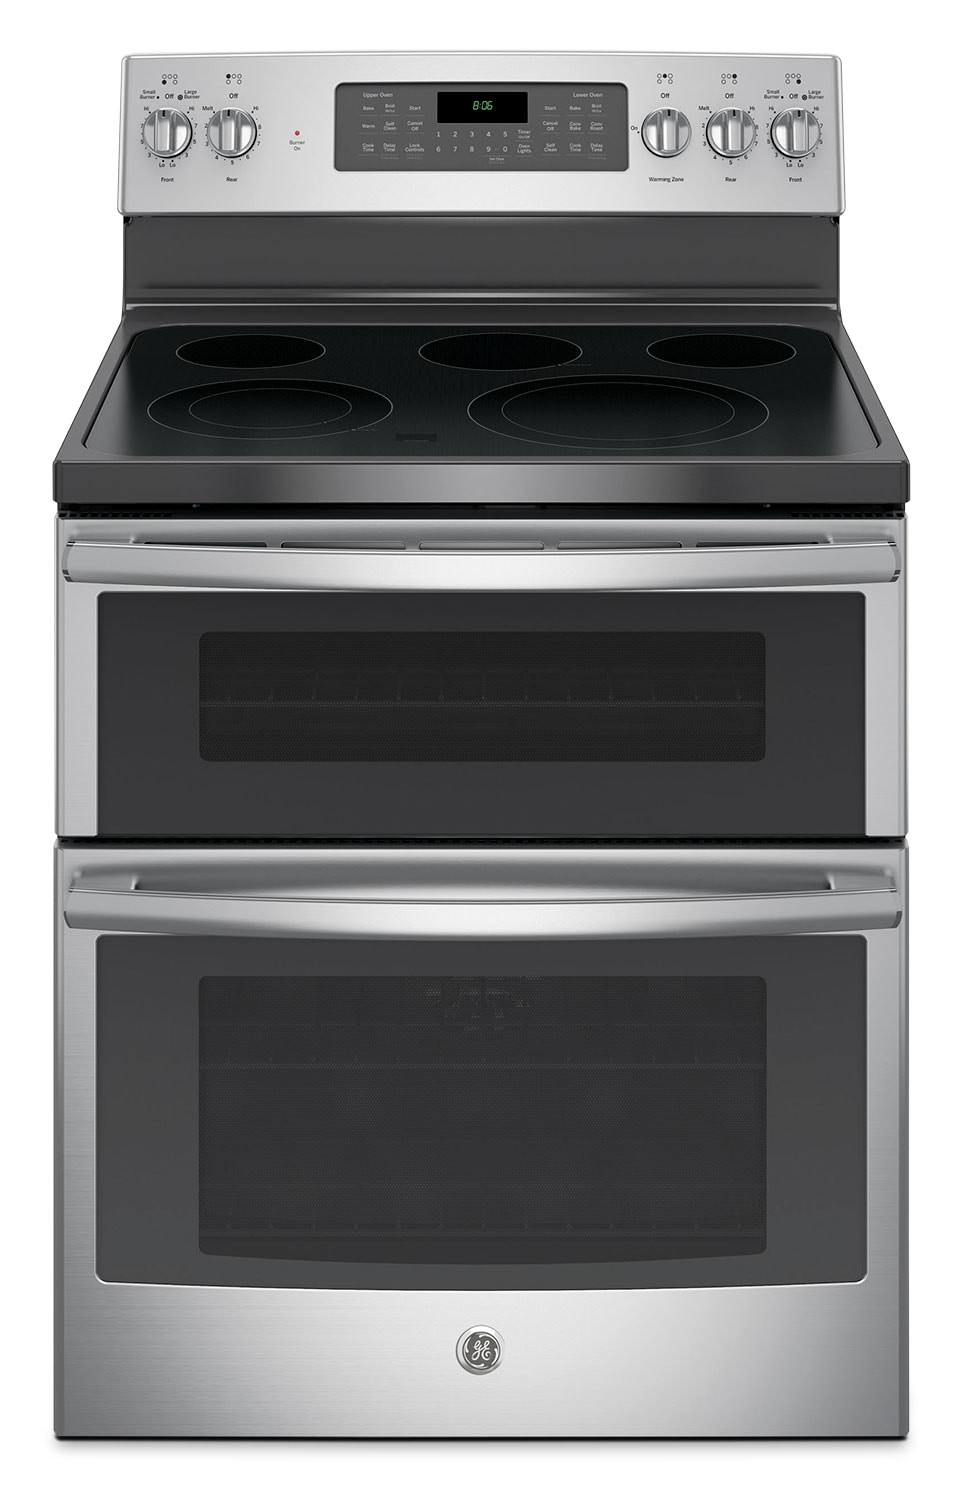 Cooking Products - GE 6.6 Cu. Ft. Freestanding Double Oven Electric Range – JCB865SJSS